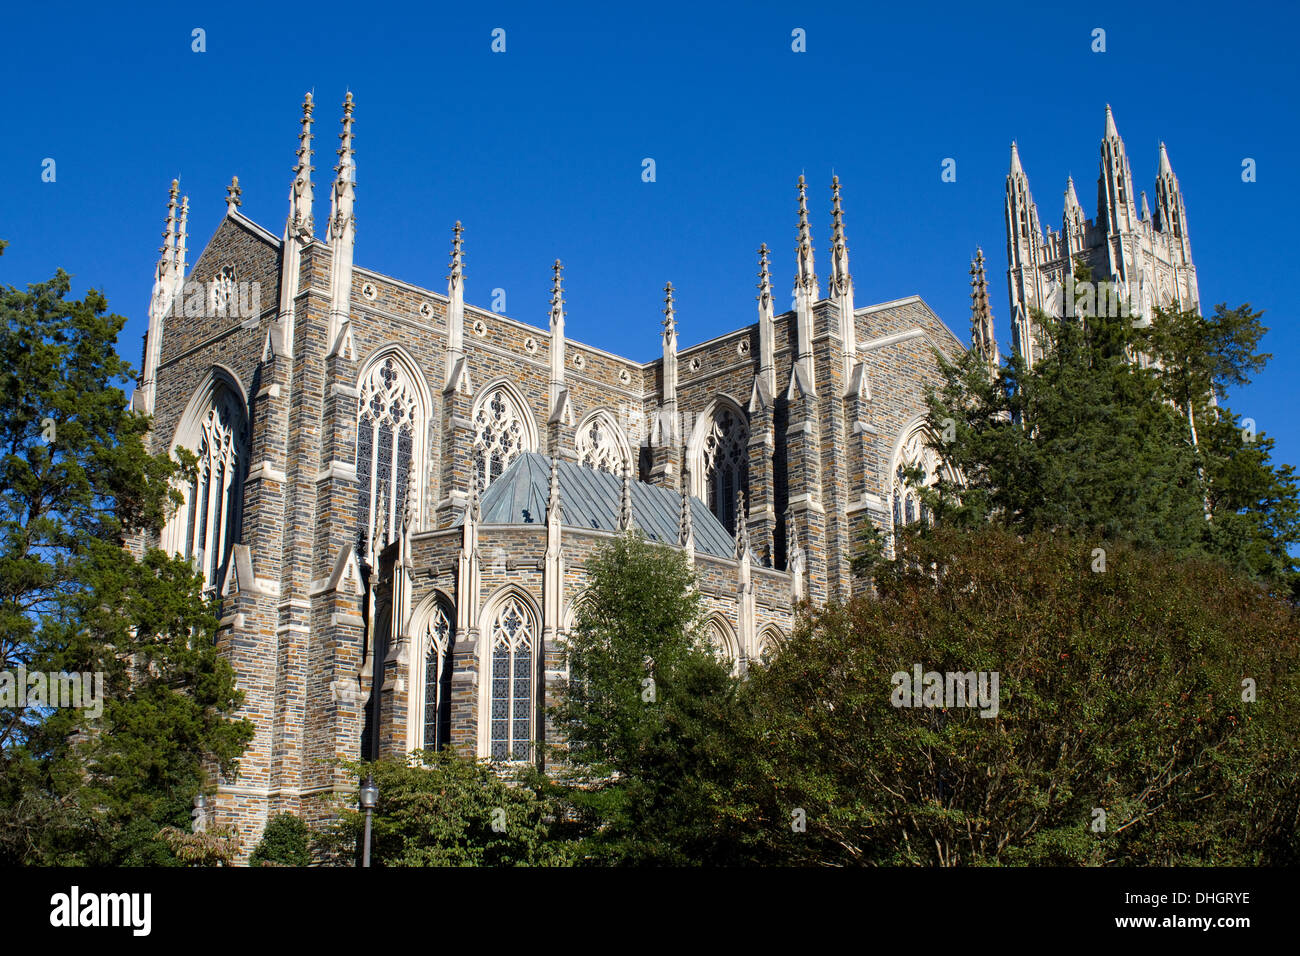 Duke University Chapel is located on the campus of Duke University in Durham, North Carolina and seats 1800 people. - Stock Image